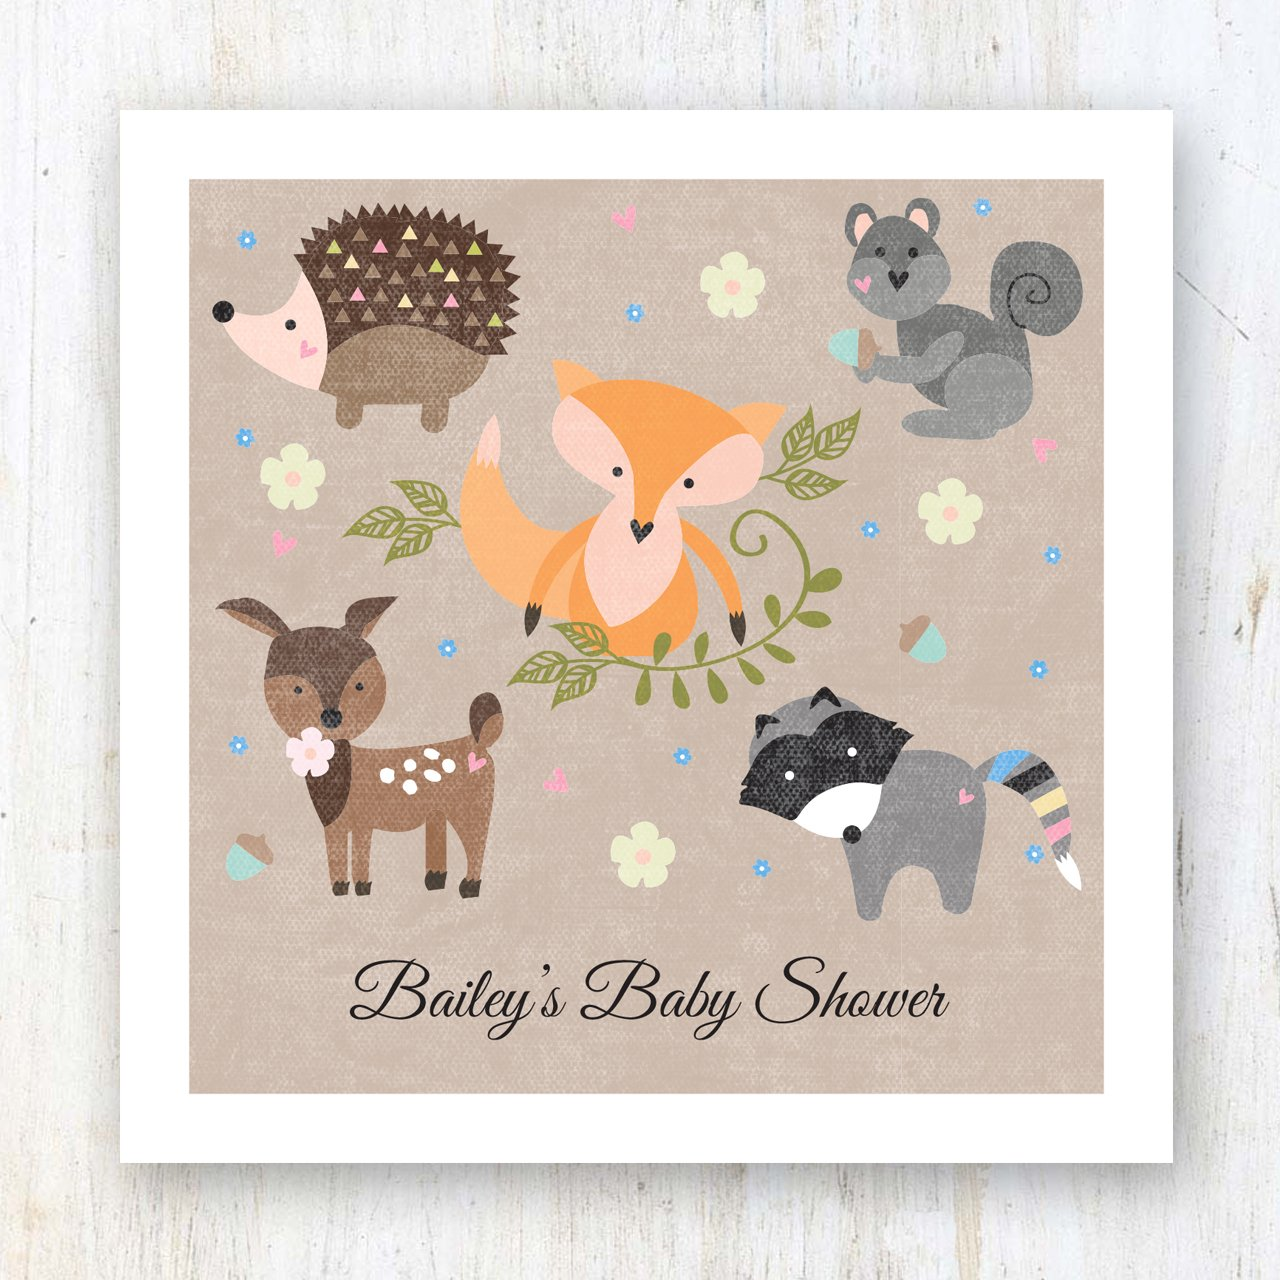 Woodland Animals Personalized Beverage Cocktail Napkins - 100 Custom Printed Paper Napkins by Canopy Street (Image #5)